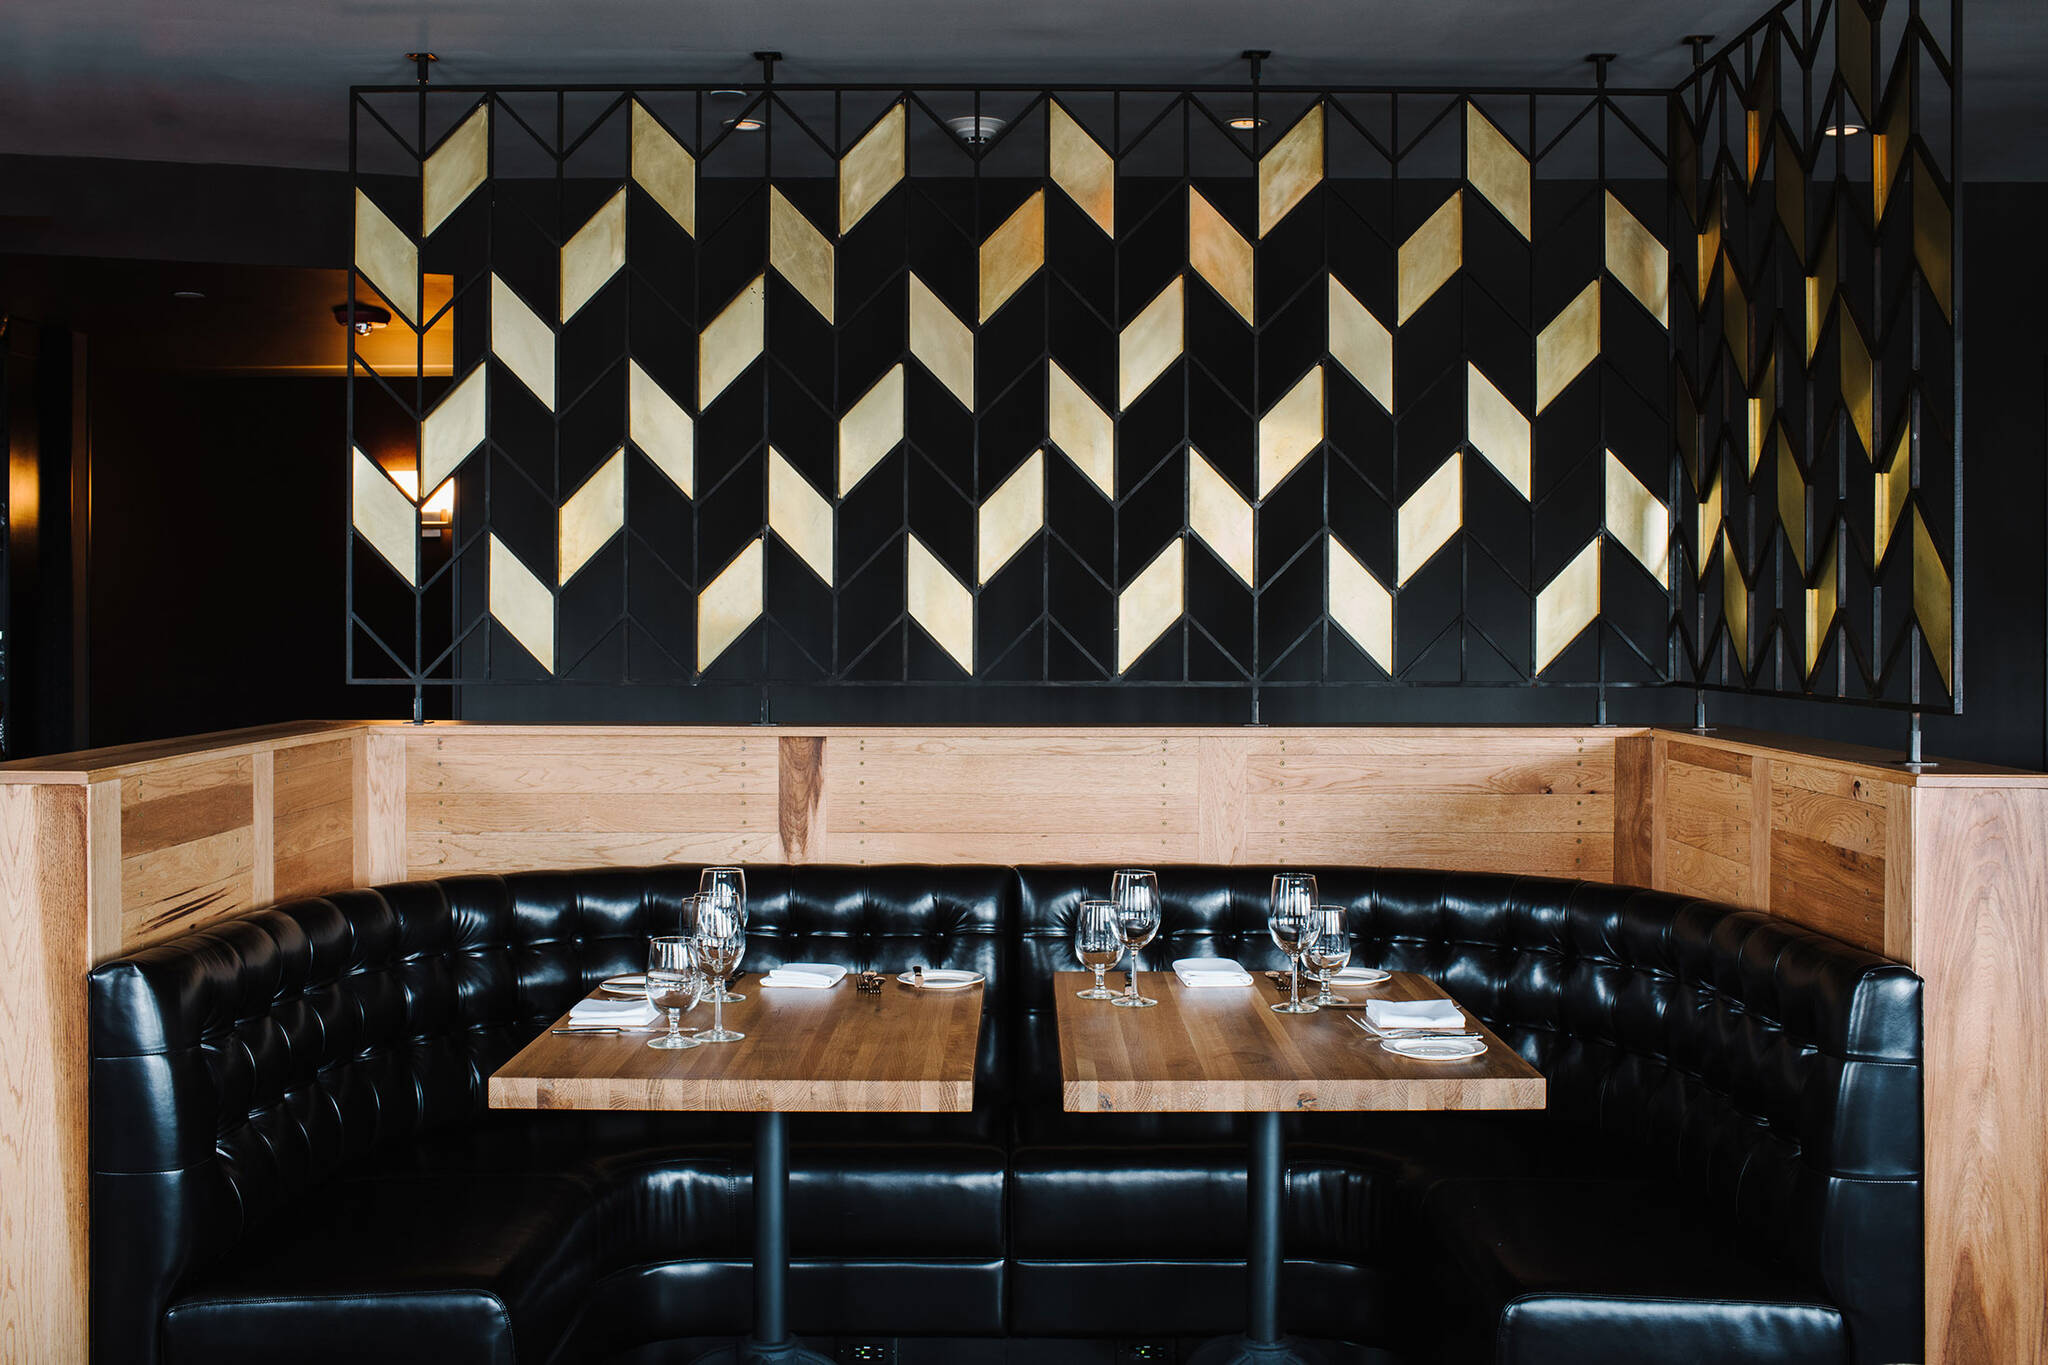 Classic booth on the American Cut Bar & Grill project located at 495 Sylvan Avenue in Englewood Cliffs, New Jersey designed by the architecture studio Danny Forster & Architecture